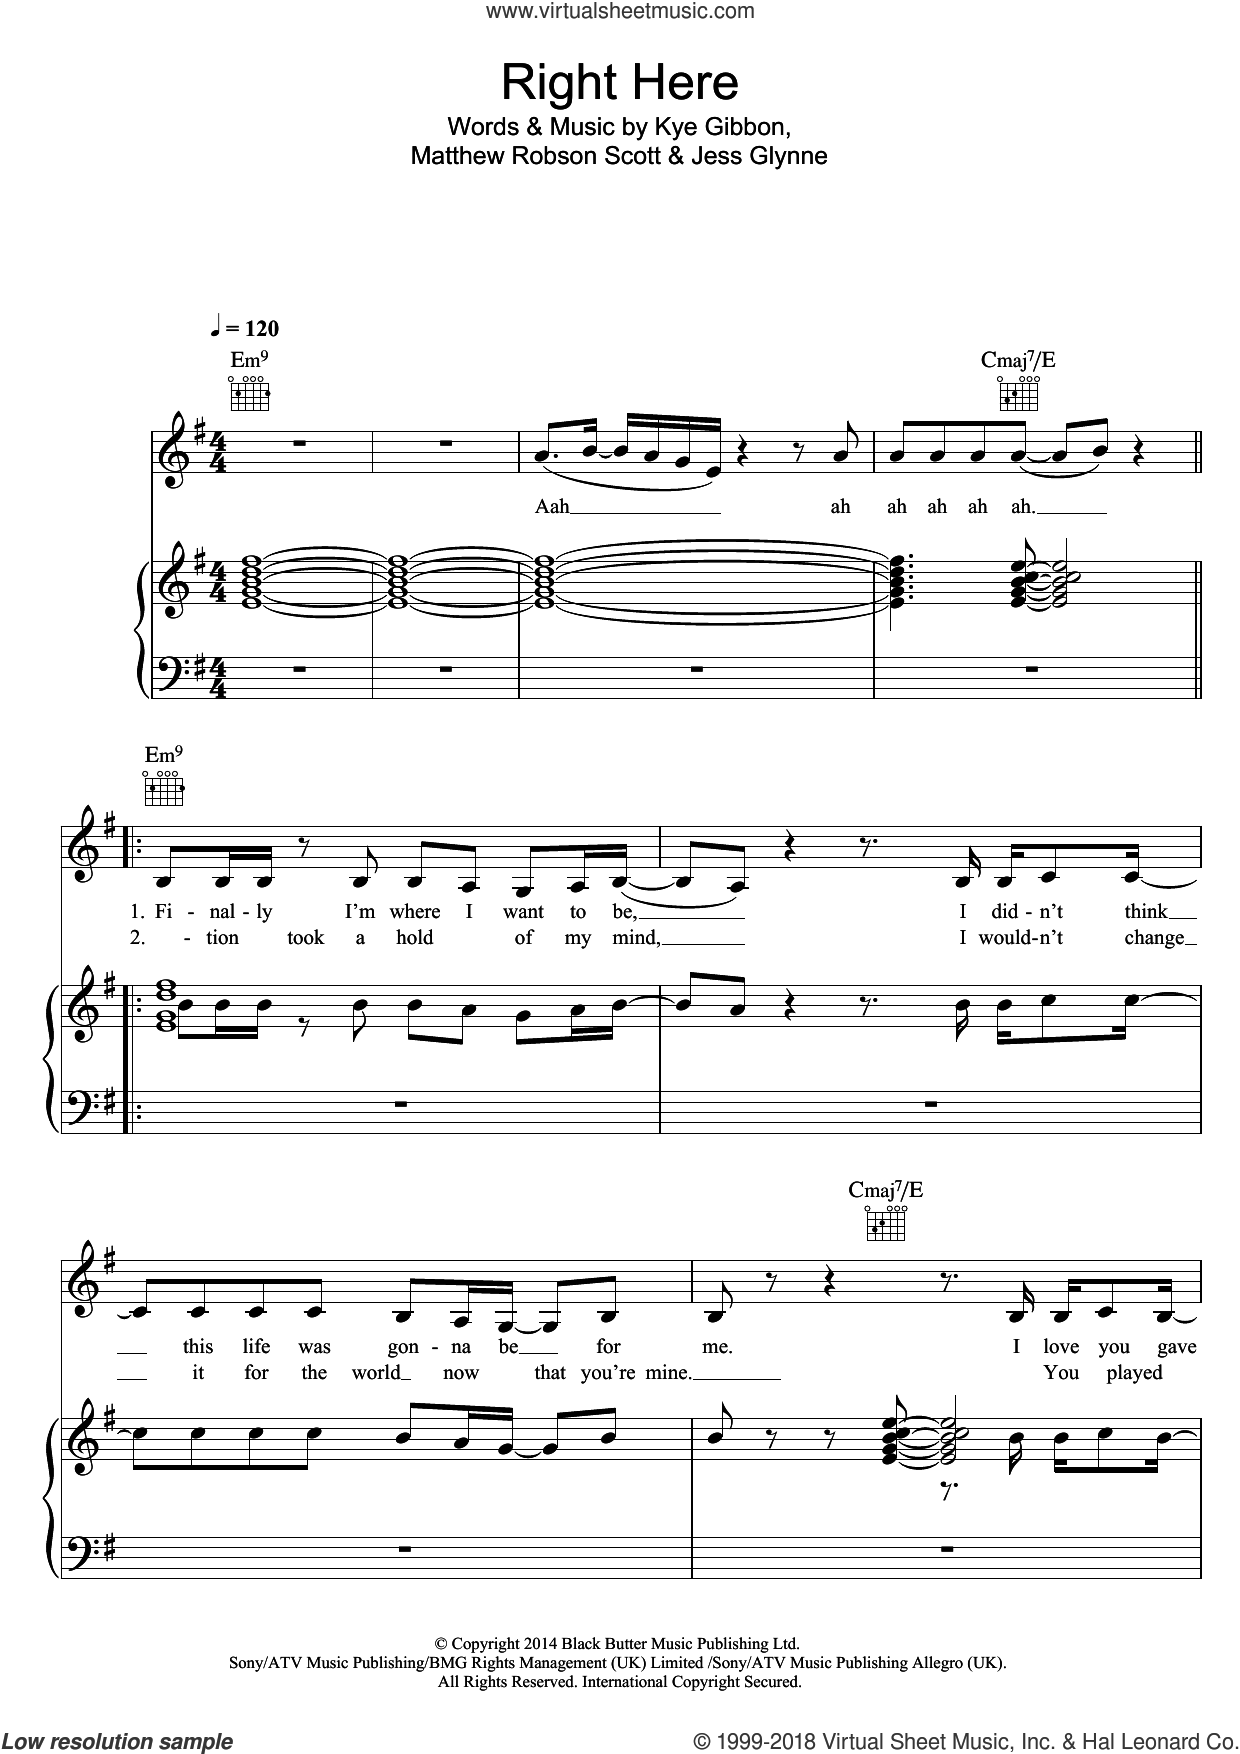 Right Here sheet music for voice, piano or guitar by Jess Glynne, Kye Gibbon and Matthew Robson Scott, intermediate skill level